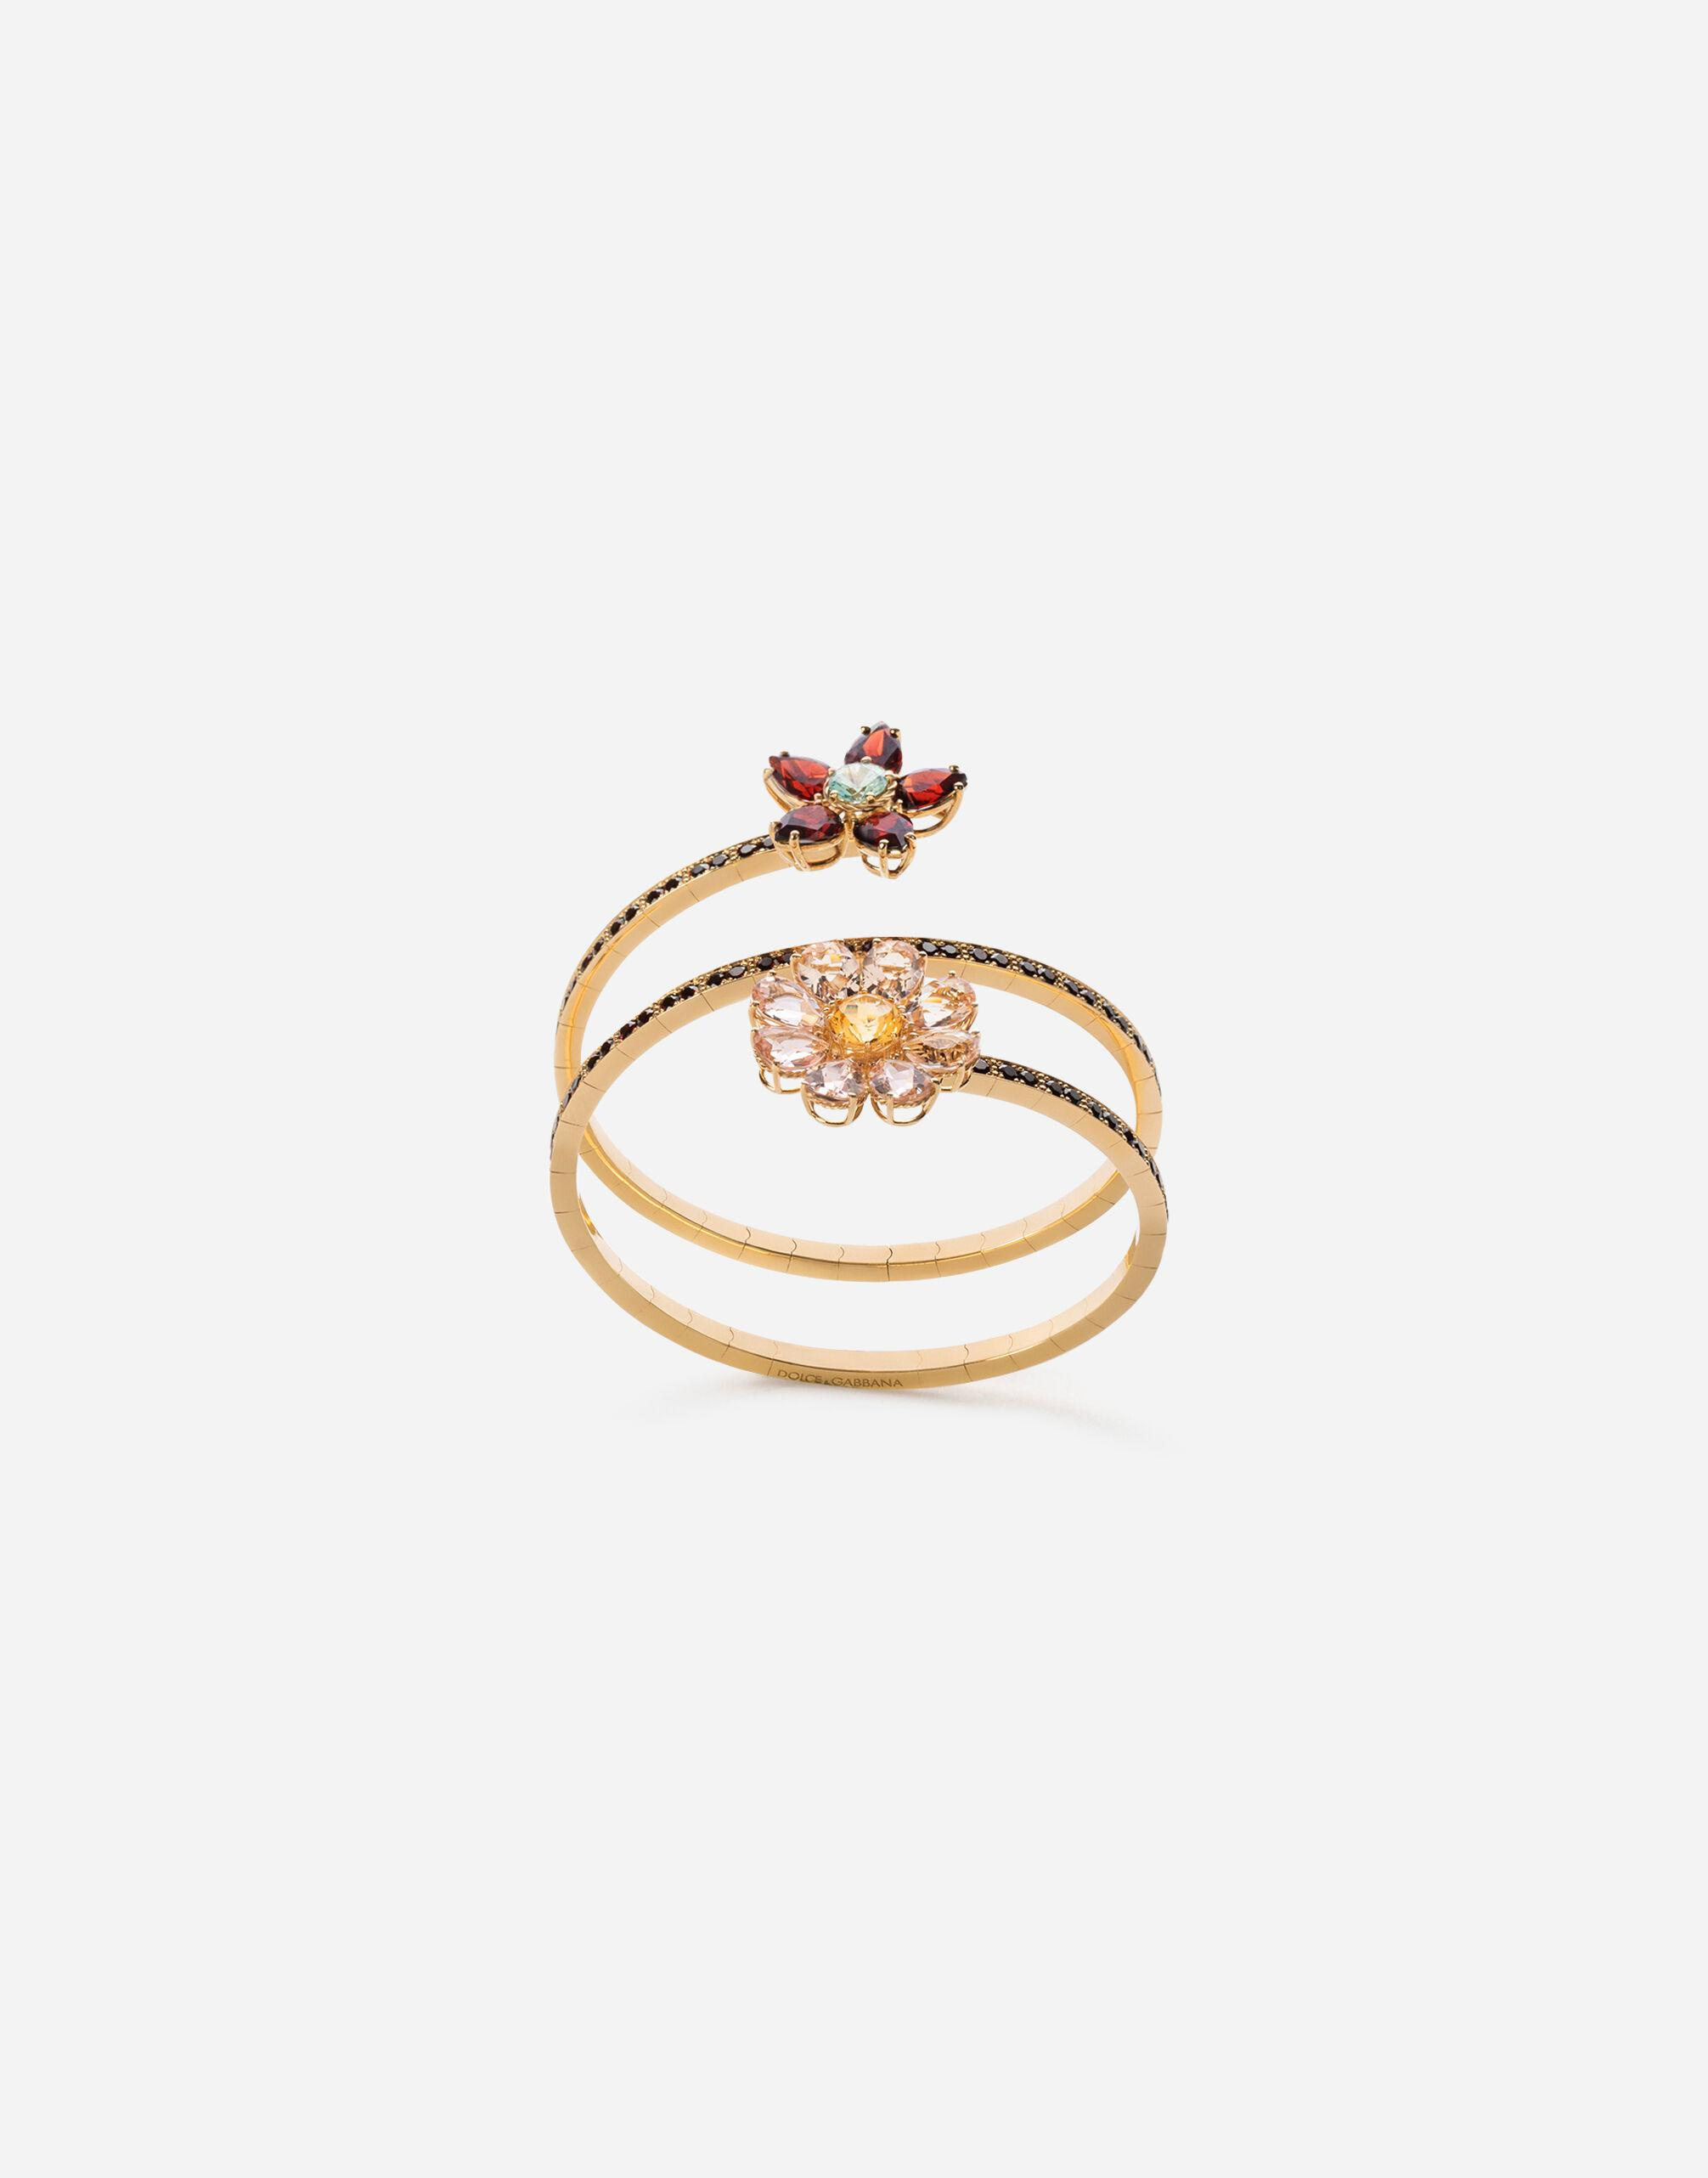 Spring yellow gold bracelet with floral decorations